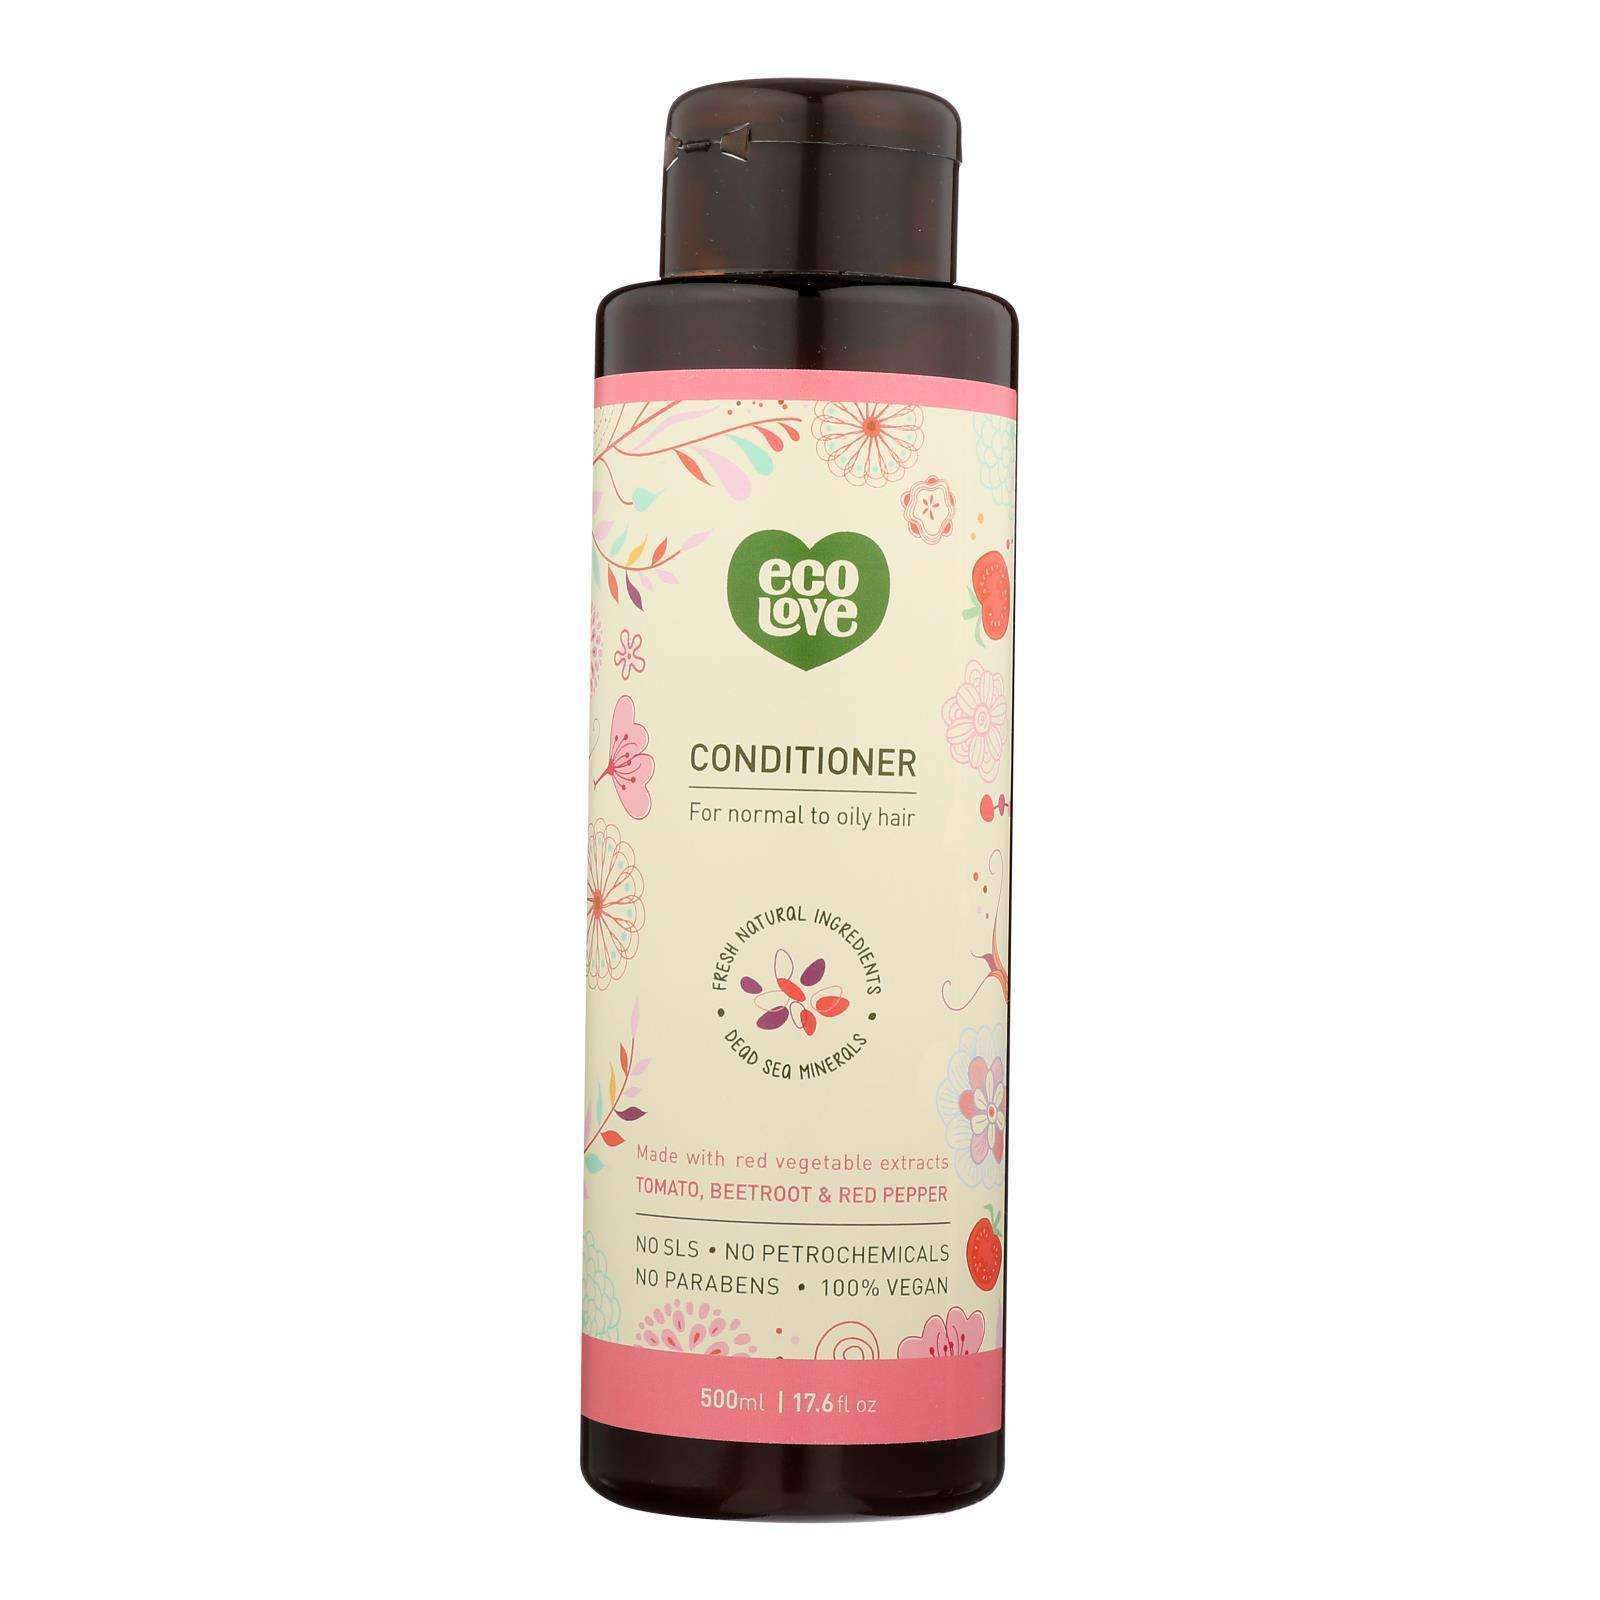 Ecolove Conditioner - Red Vegetables Conditioner For Normal To Oily Hair - Case Of 1 - 17.6 Fl Oz. - BeeGreen